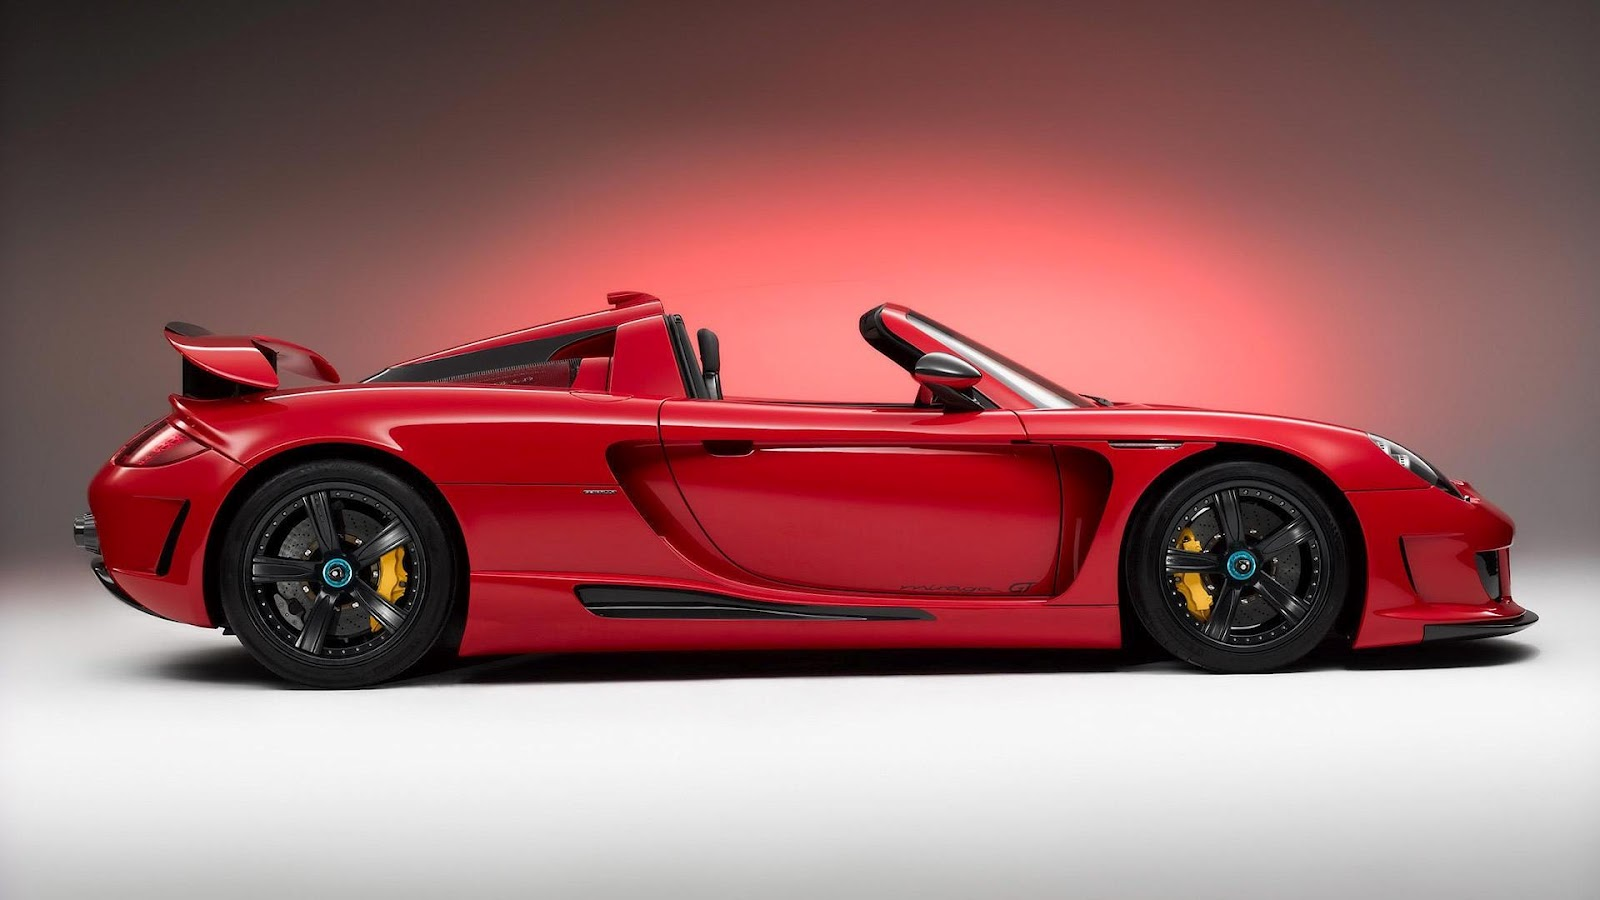 free cars hd porsche carrera gt hd wallpapers. Black Bedroom Furniture Sets. Home Design Ideas